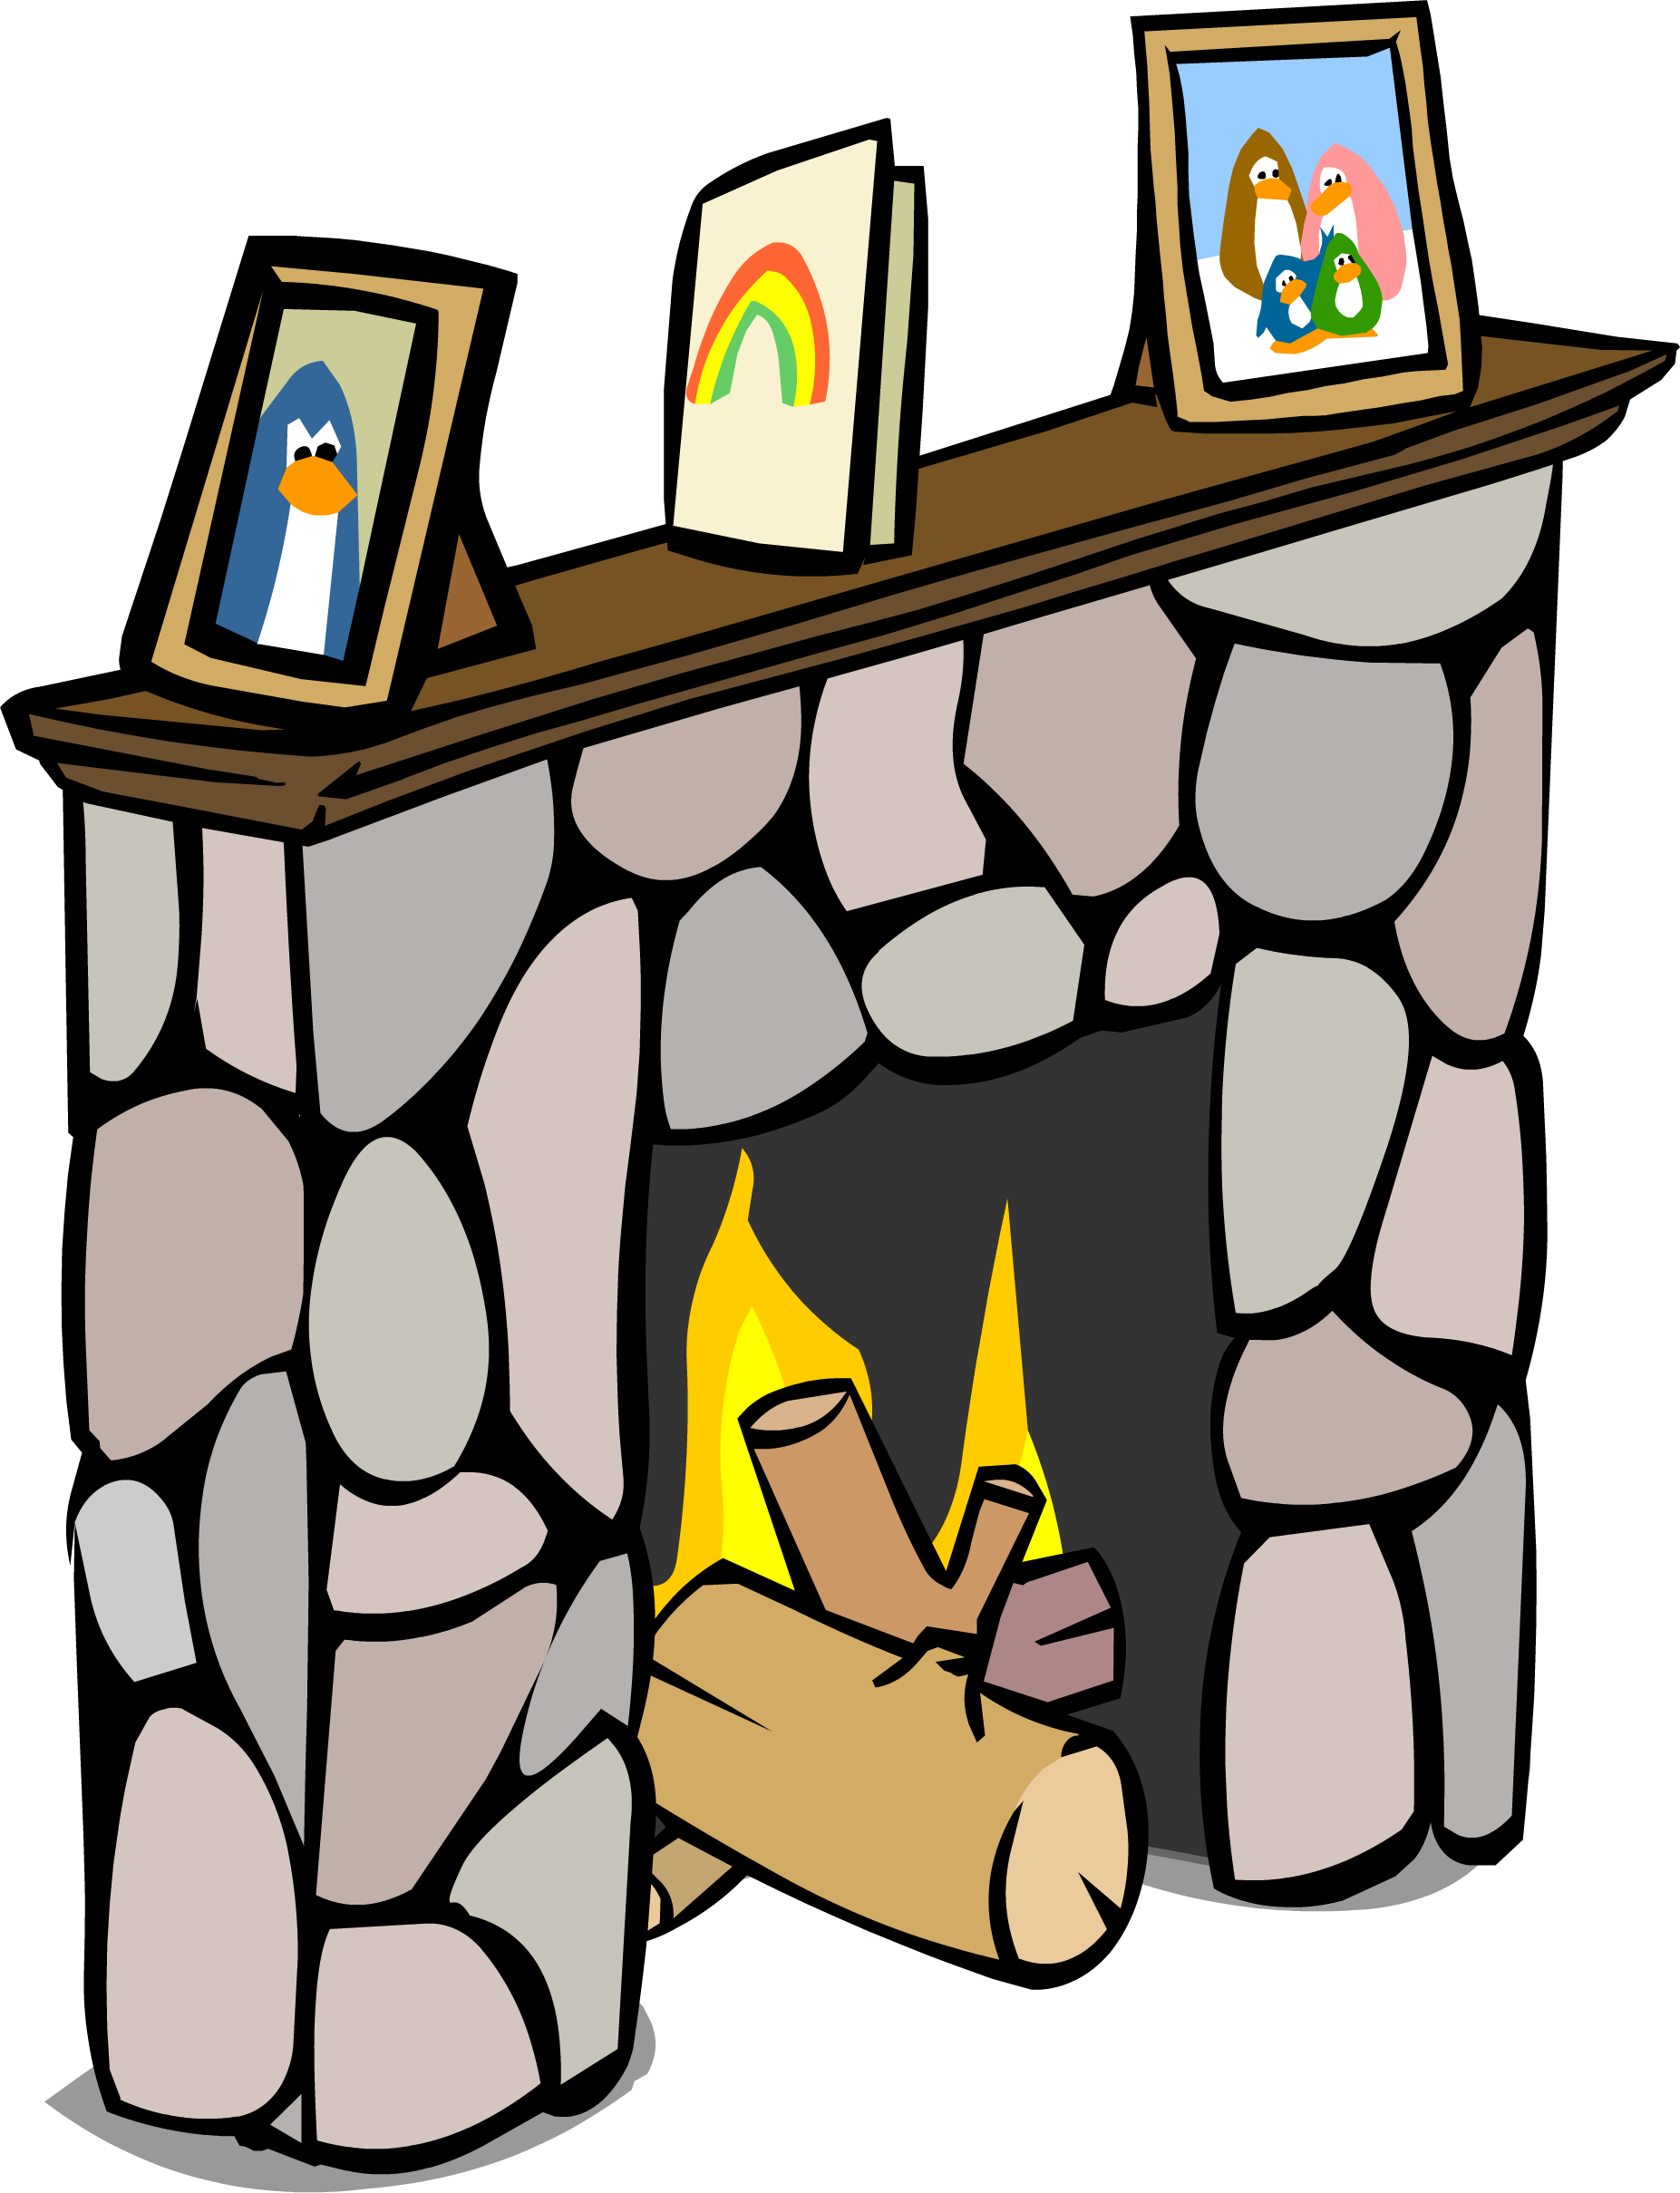 Image sprite png club. Fireplace clipart comic